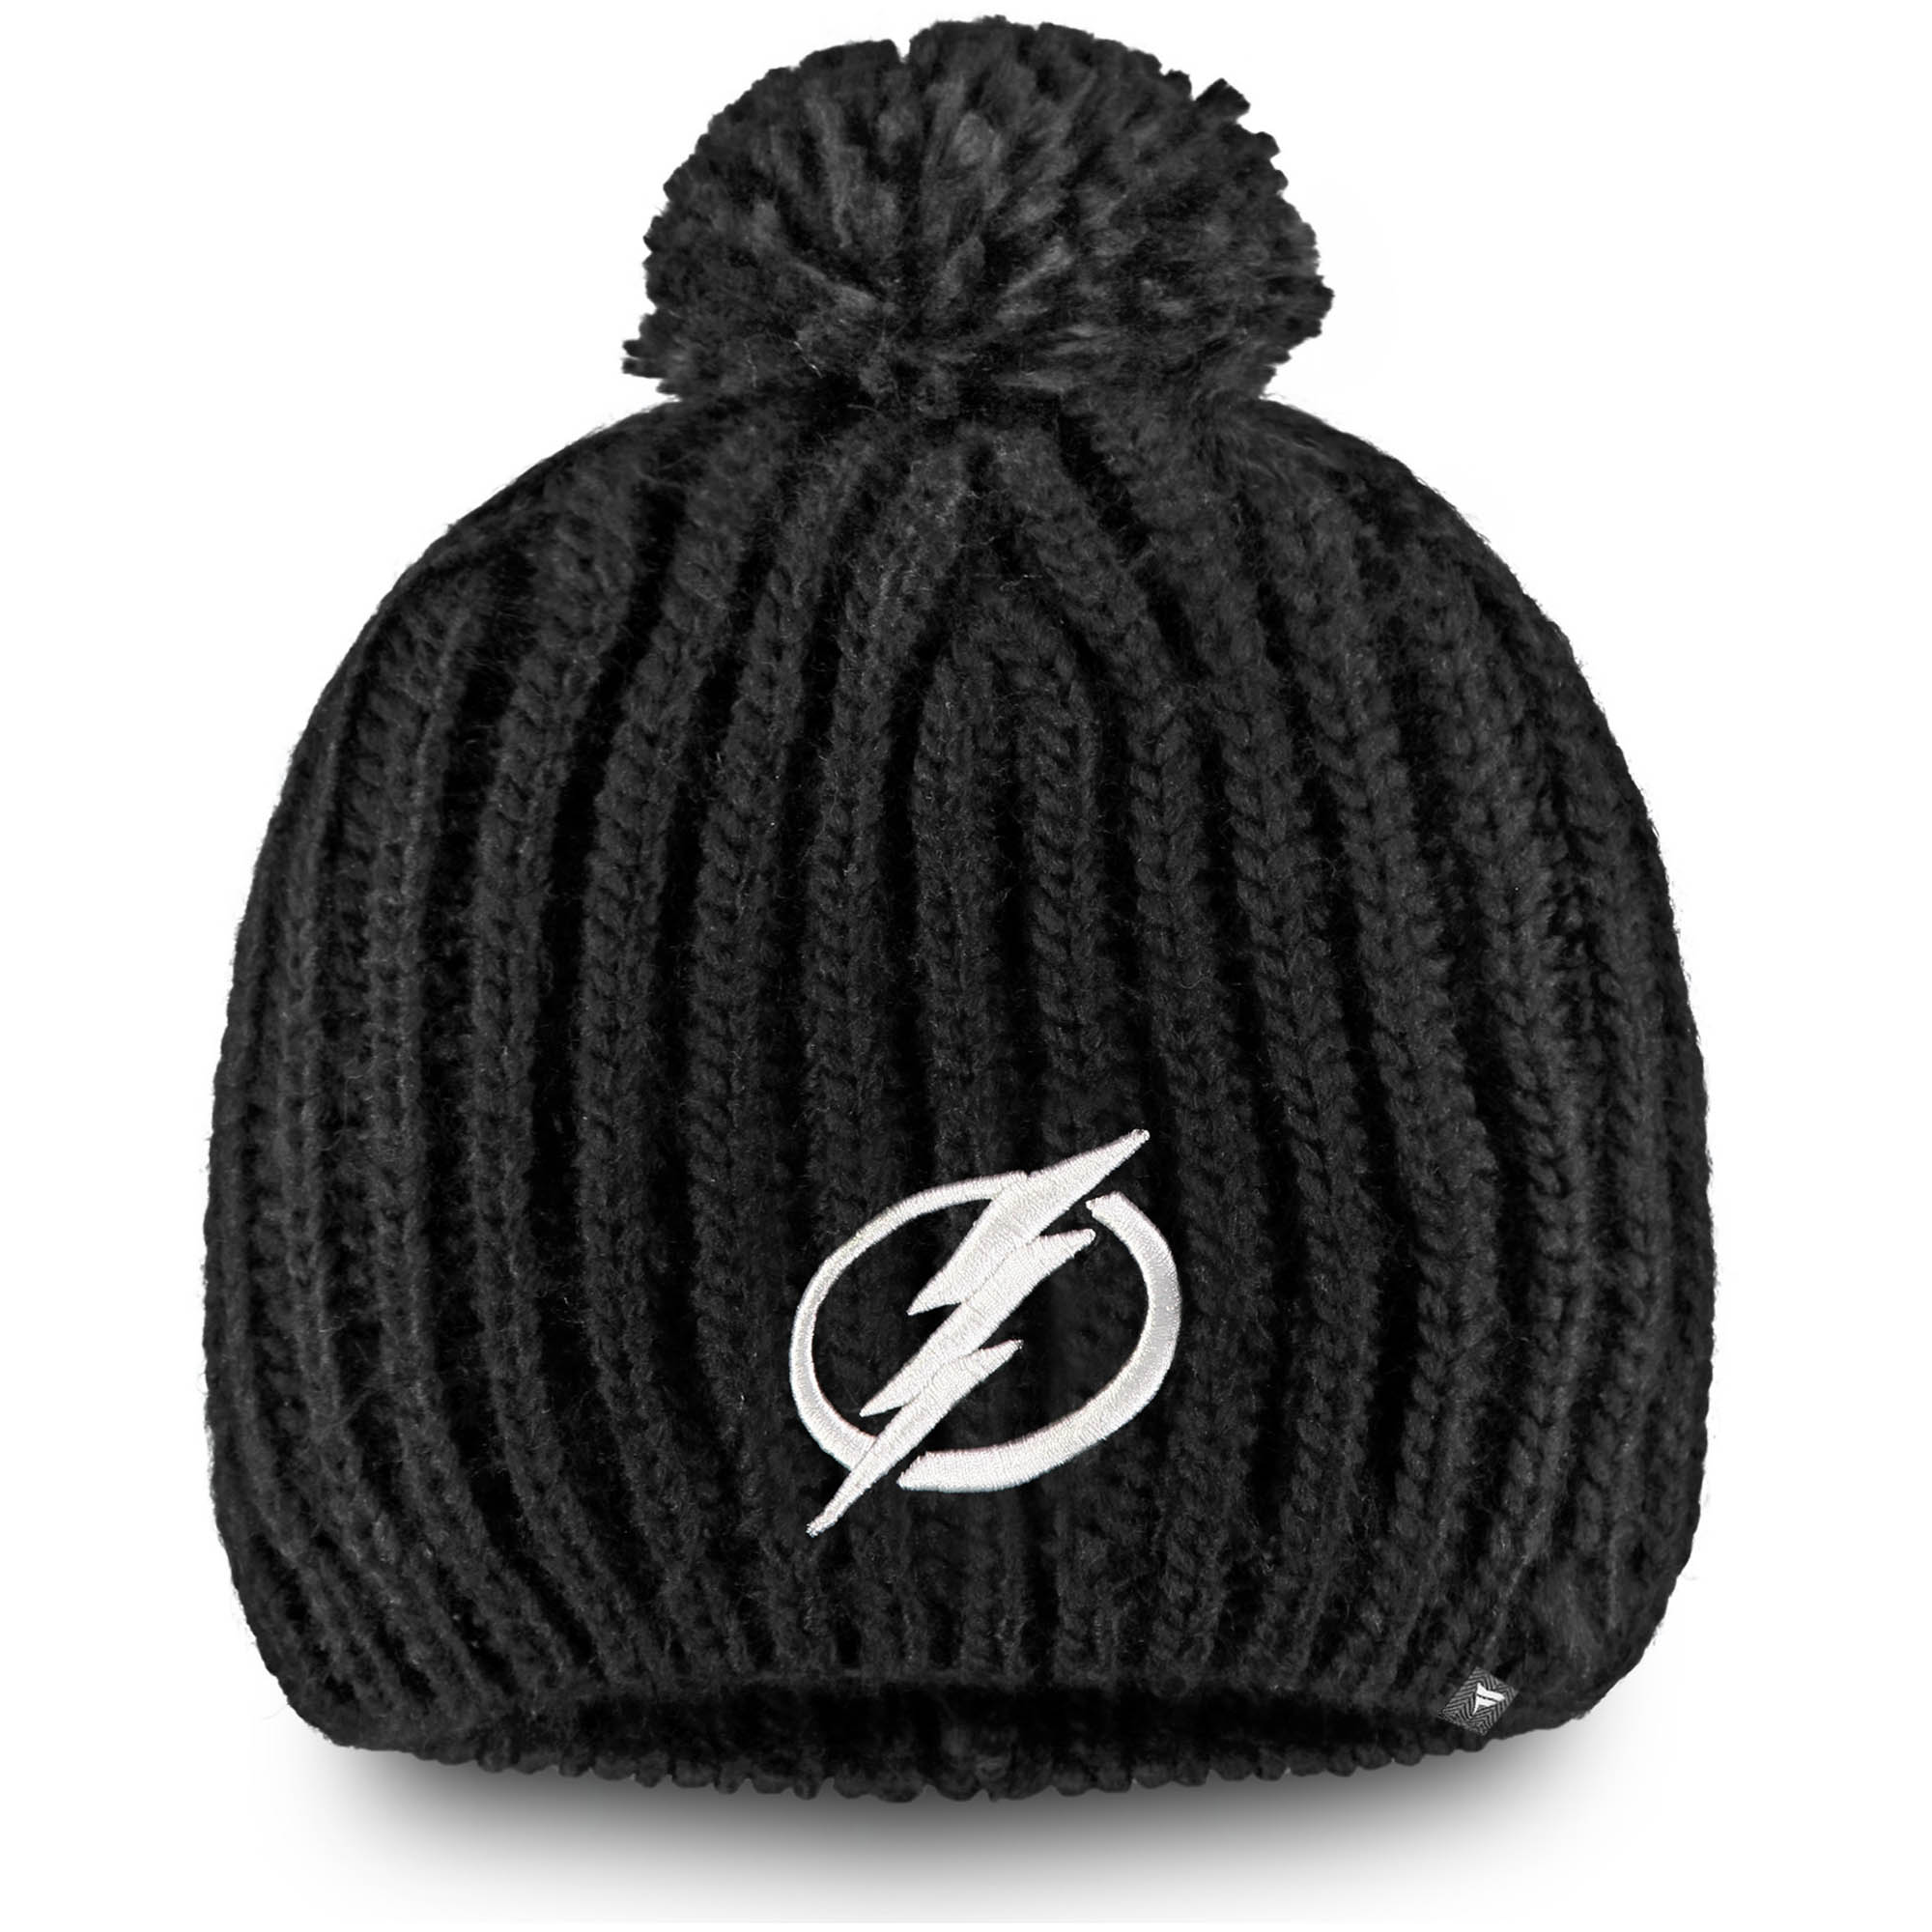 Tampa Bay Lightning Fanatics Branded Women's Iconic Knit Beanie with Pom - Black - OSFA